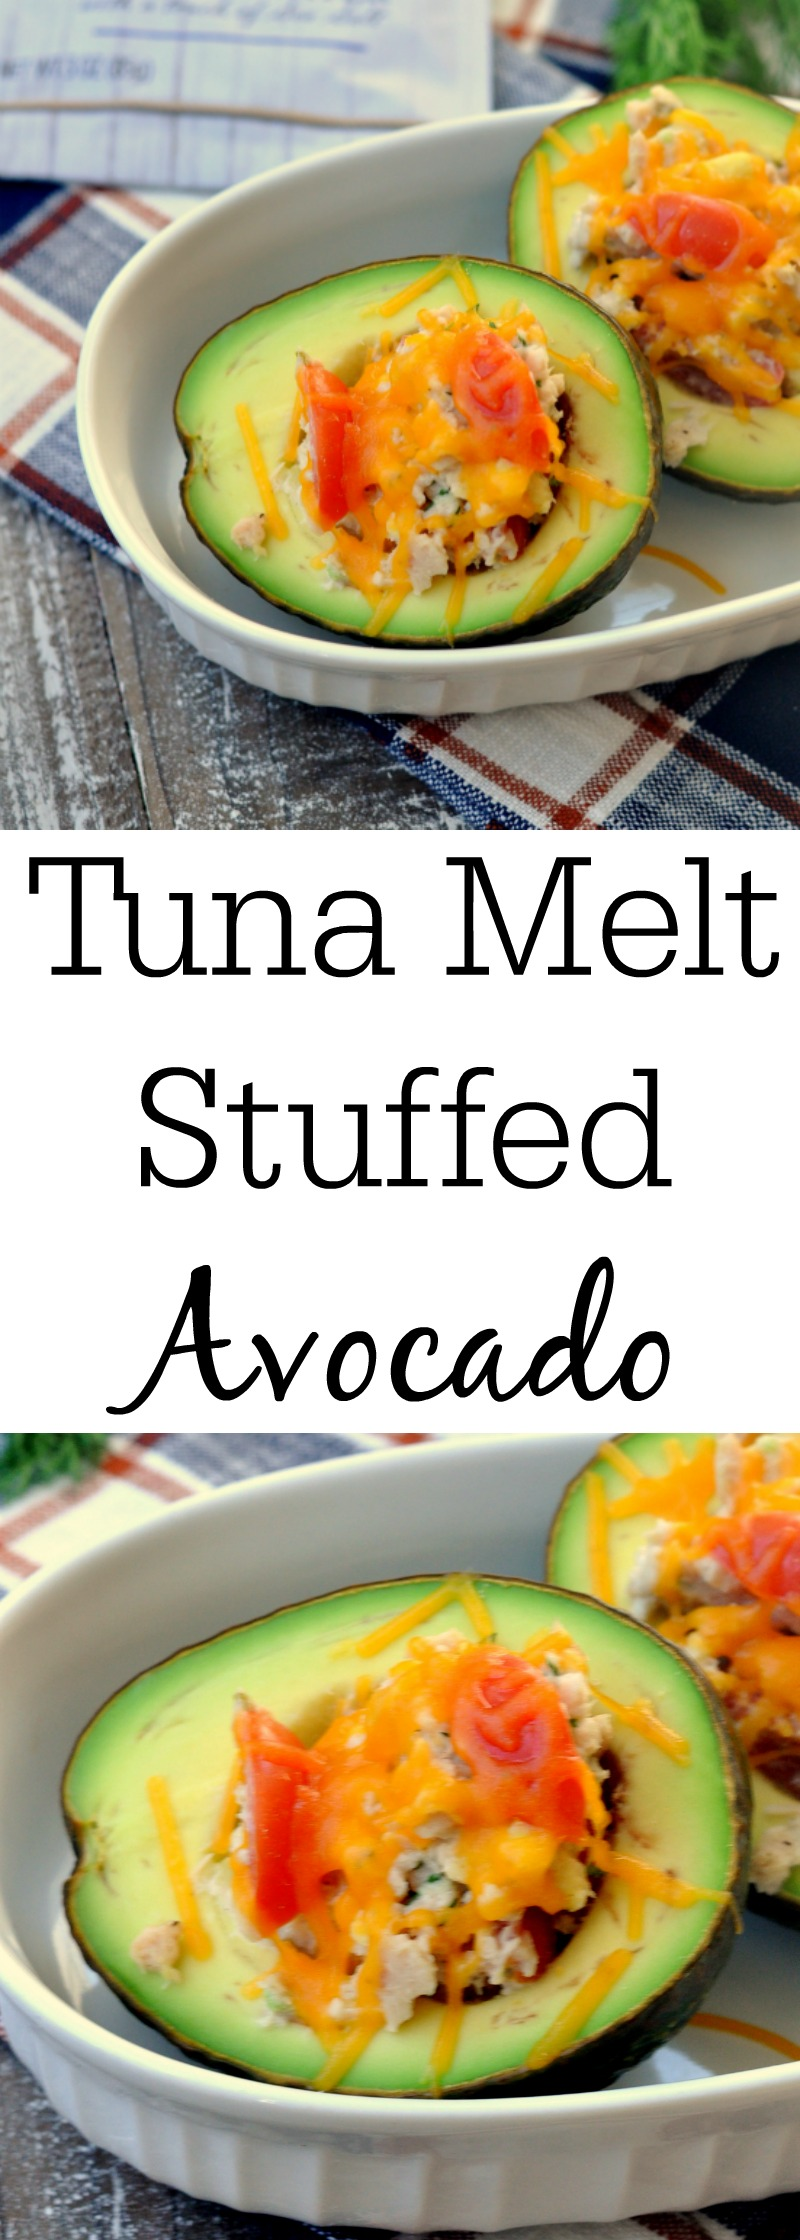 Tuna Melt Stuffed Avocado